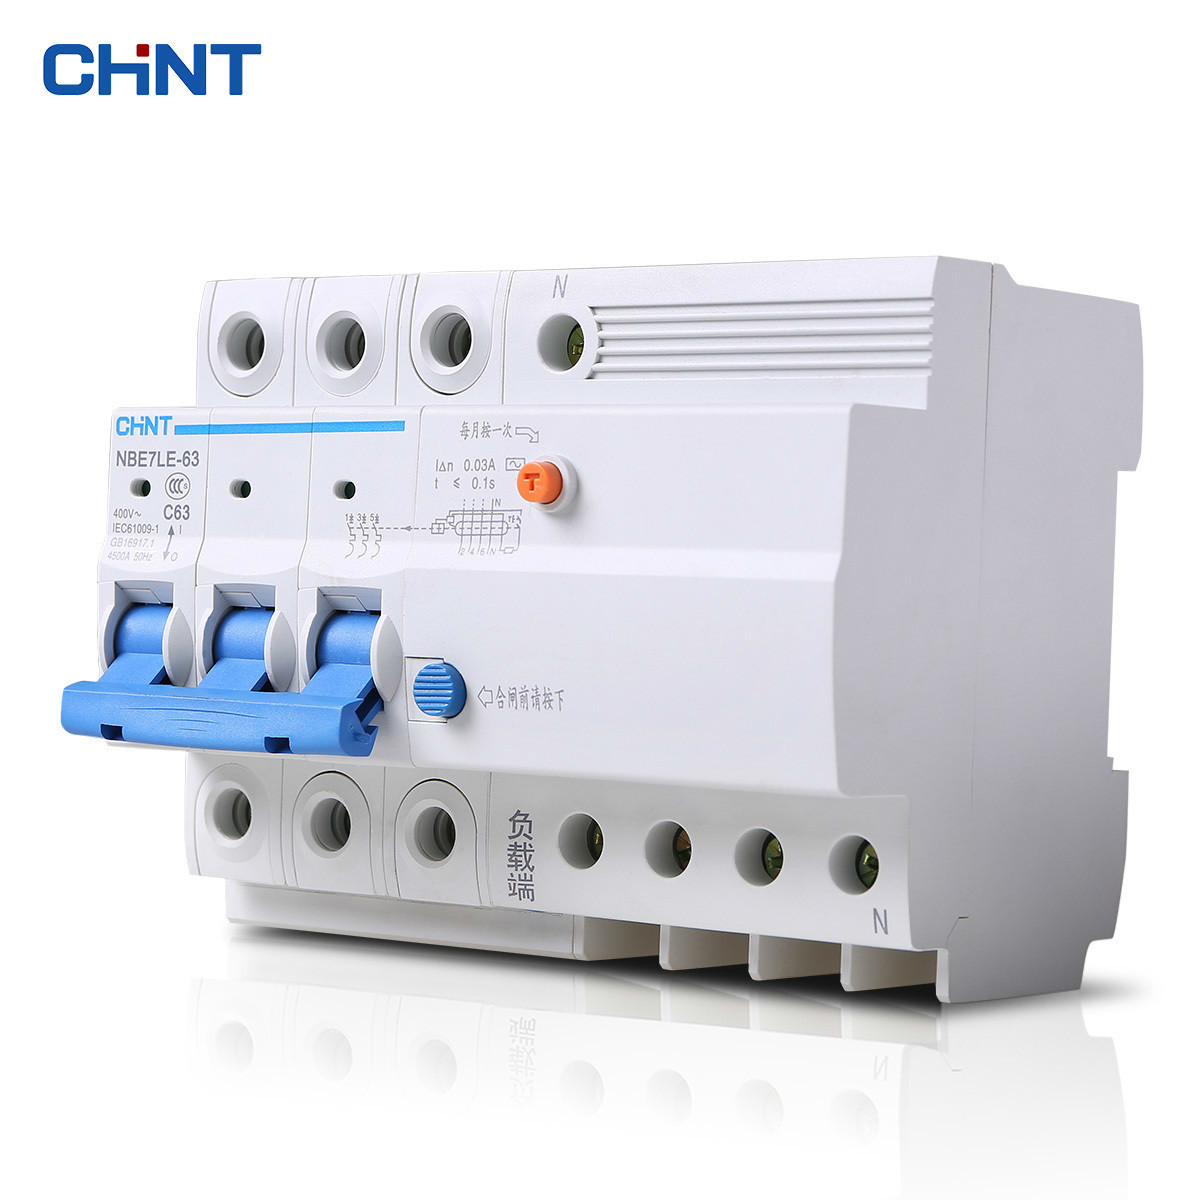 CHNT CHINT Leakage Protector NBE7LE 3P + N 16A 20A 25A 32A 40A 63A Small Circuit Breaker Air Switch chnt chint leakage protector nbe7le 3p n 16a 20a 25a 32a 40a 63a small circuit breaker air switch